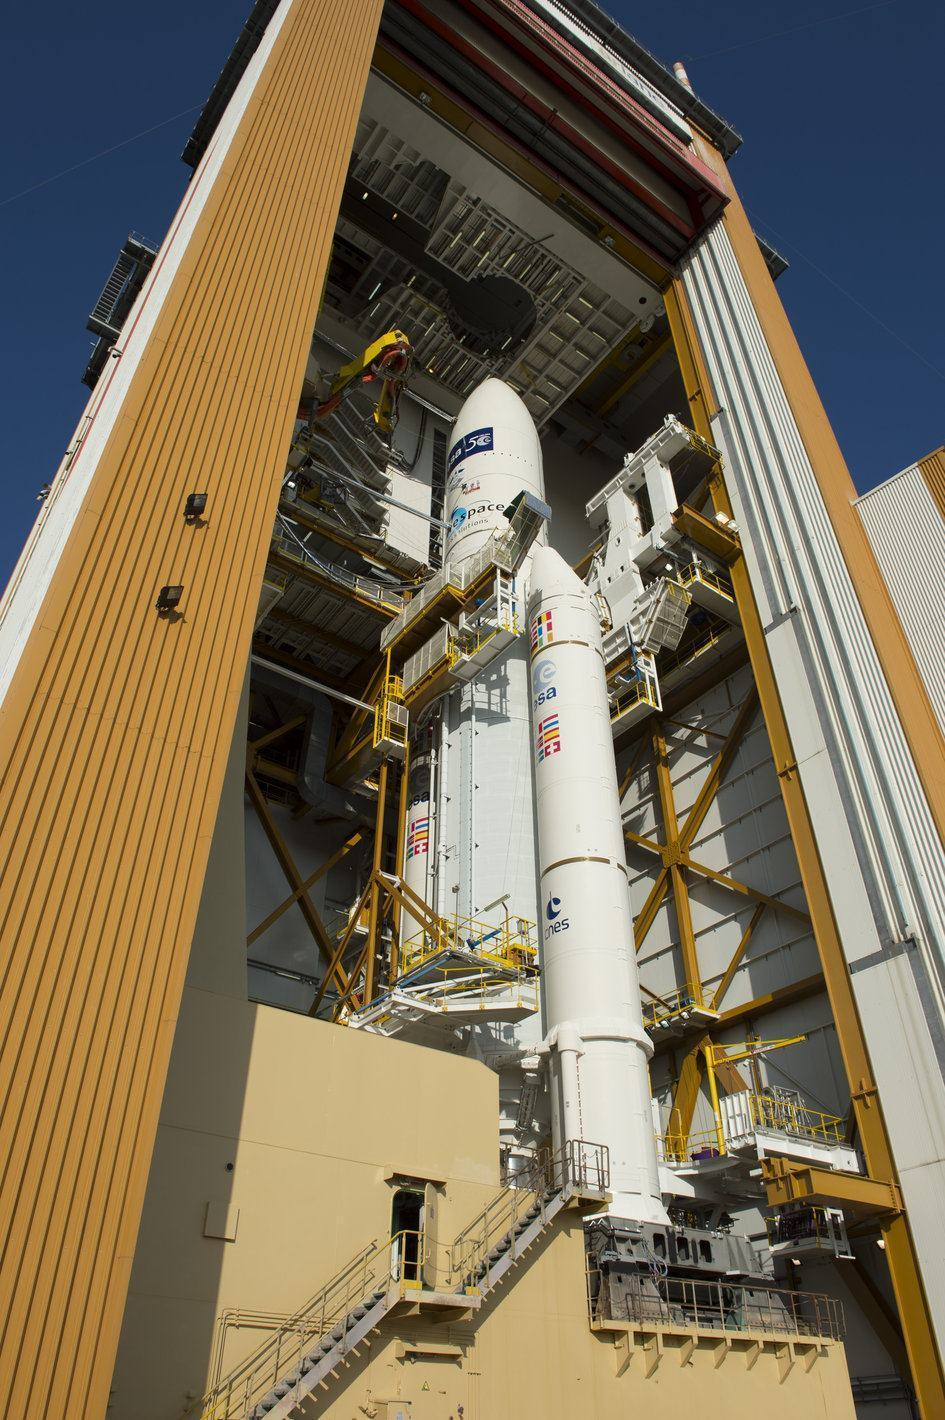 Ariane_5_in_the_BAF_ready_for_transfer_to_the_launch_pad_fullwidth